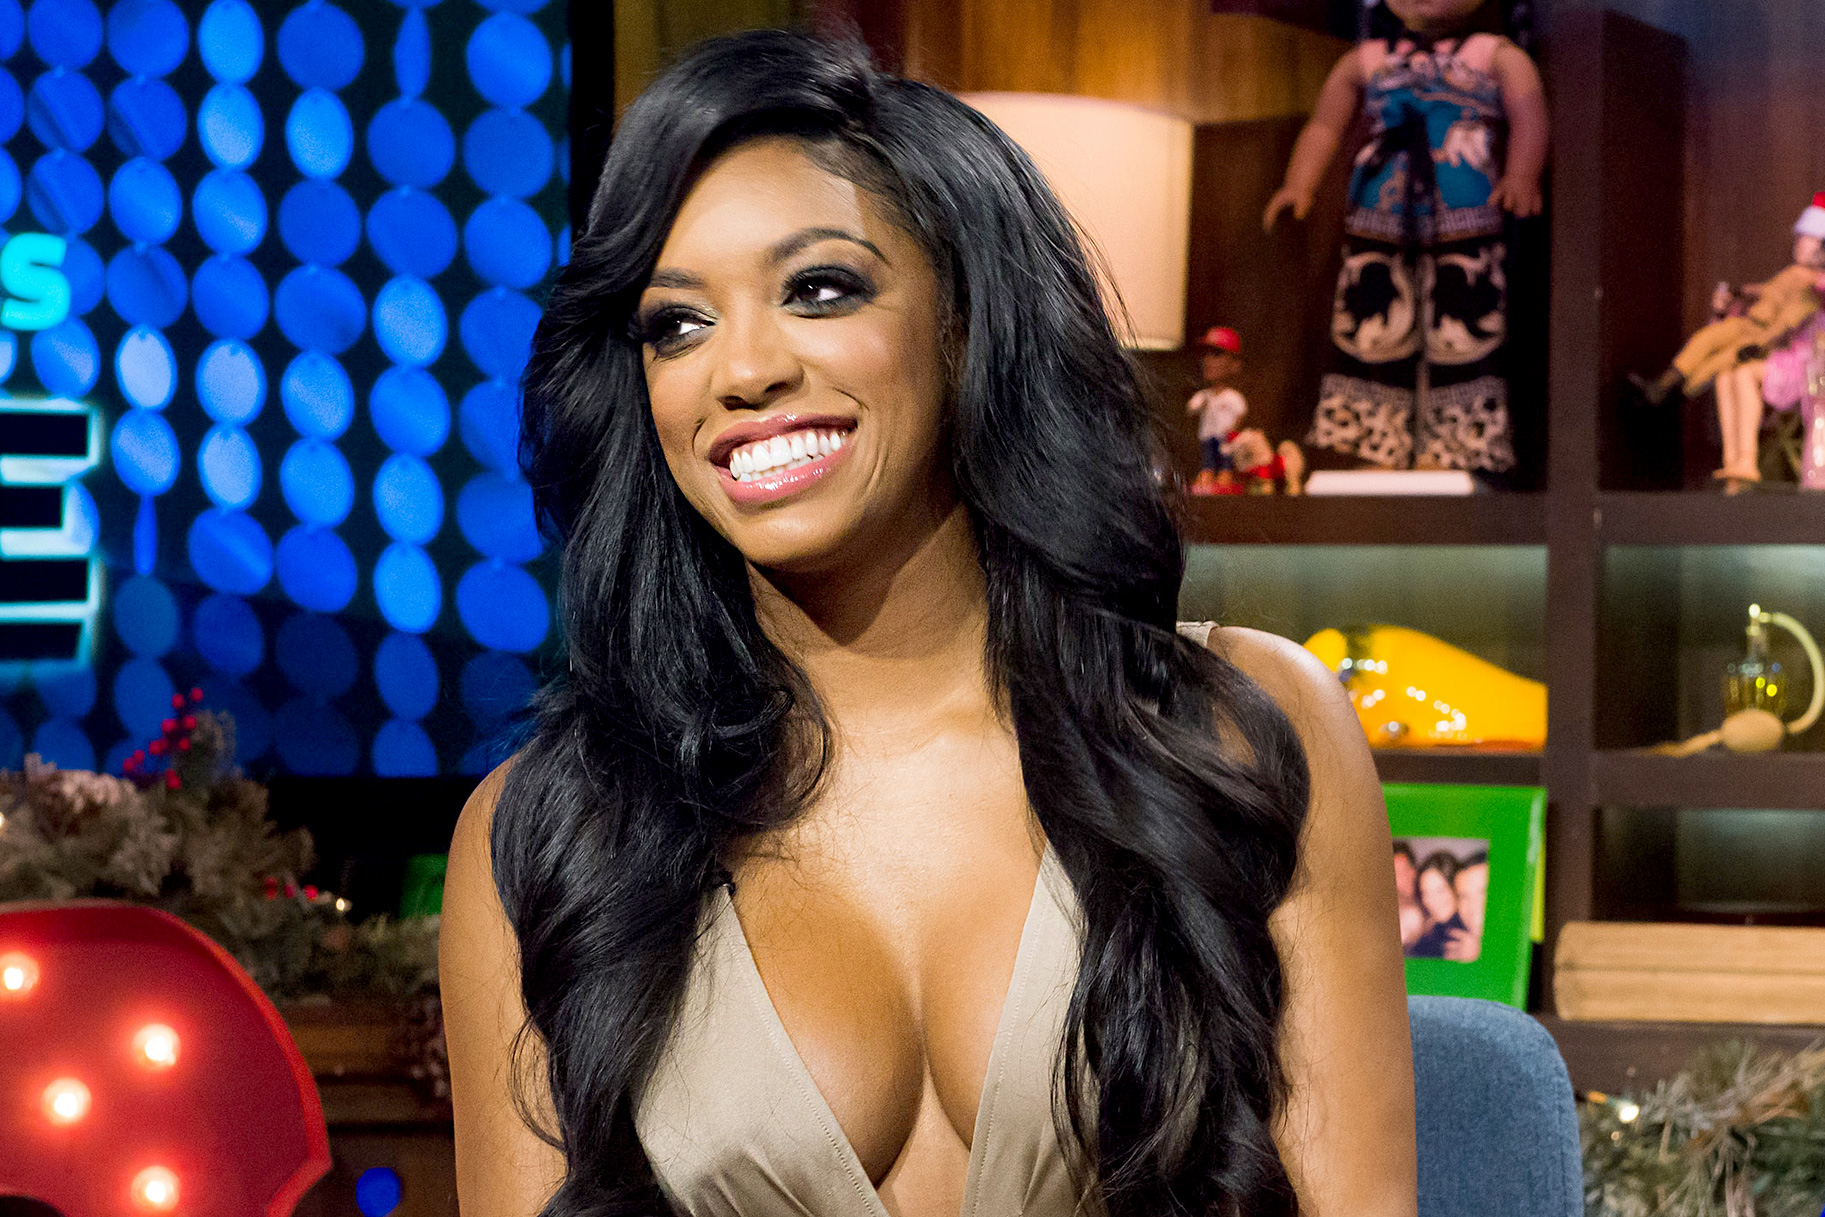 Porsha Williams Claps Back At Hater Who Says That Lately Her Wigs 'Are Sitting Like Hats' - Fans Accuse Porsha Of Body-Shaming